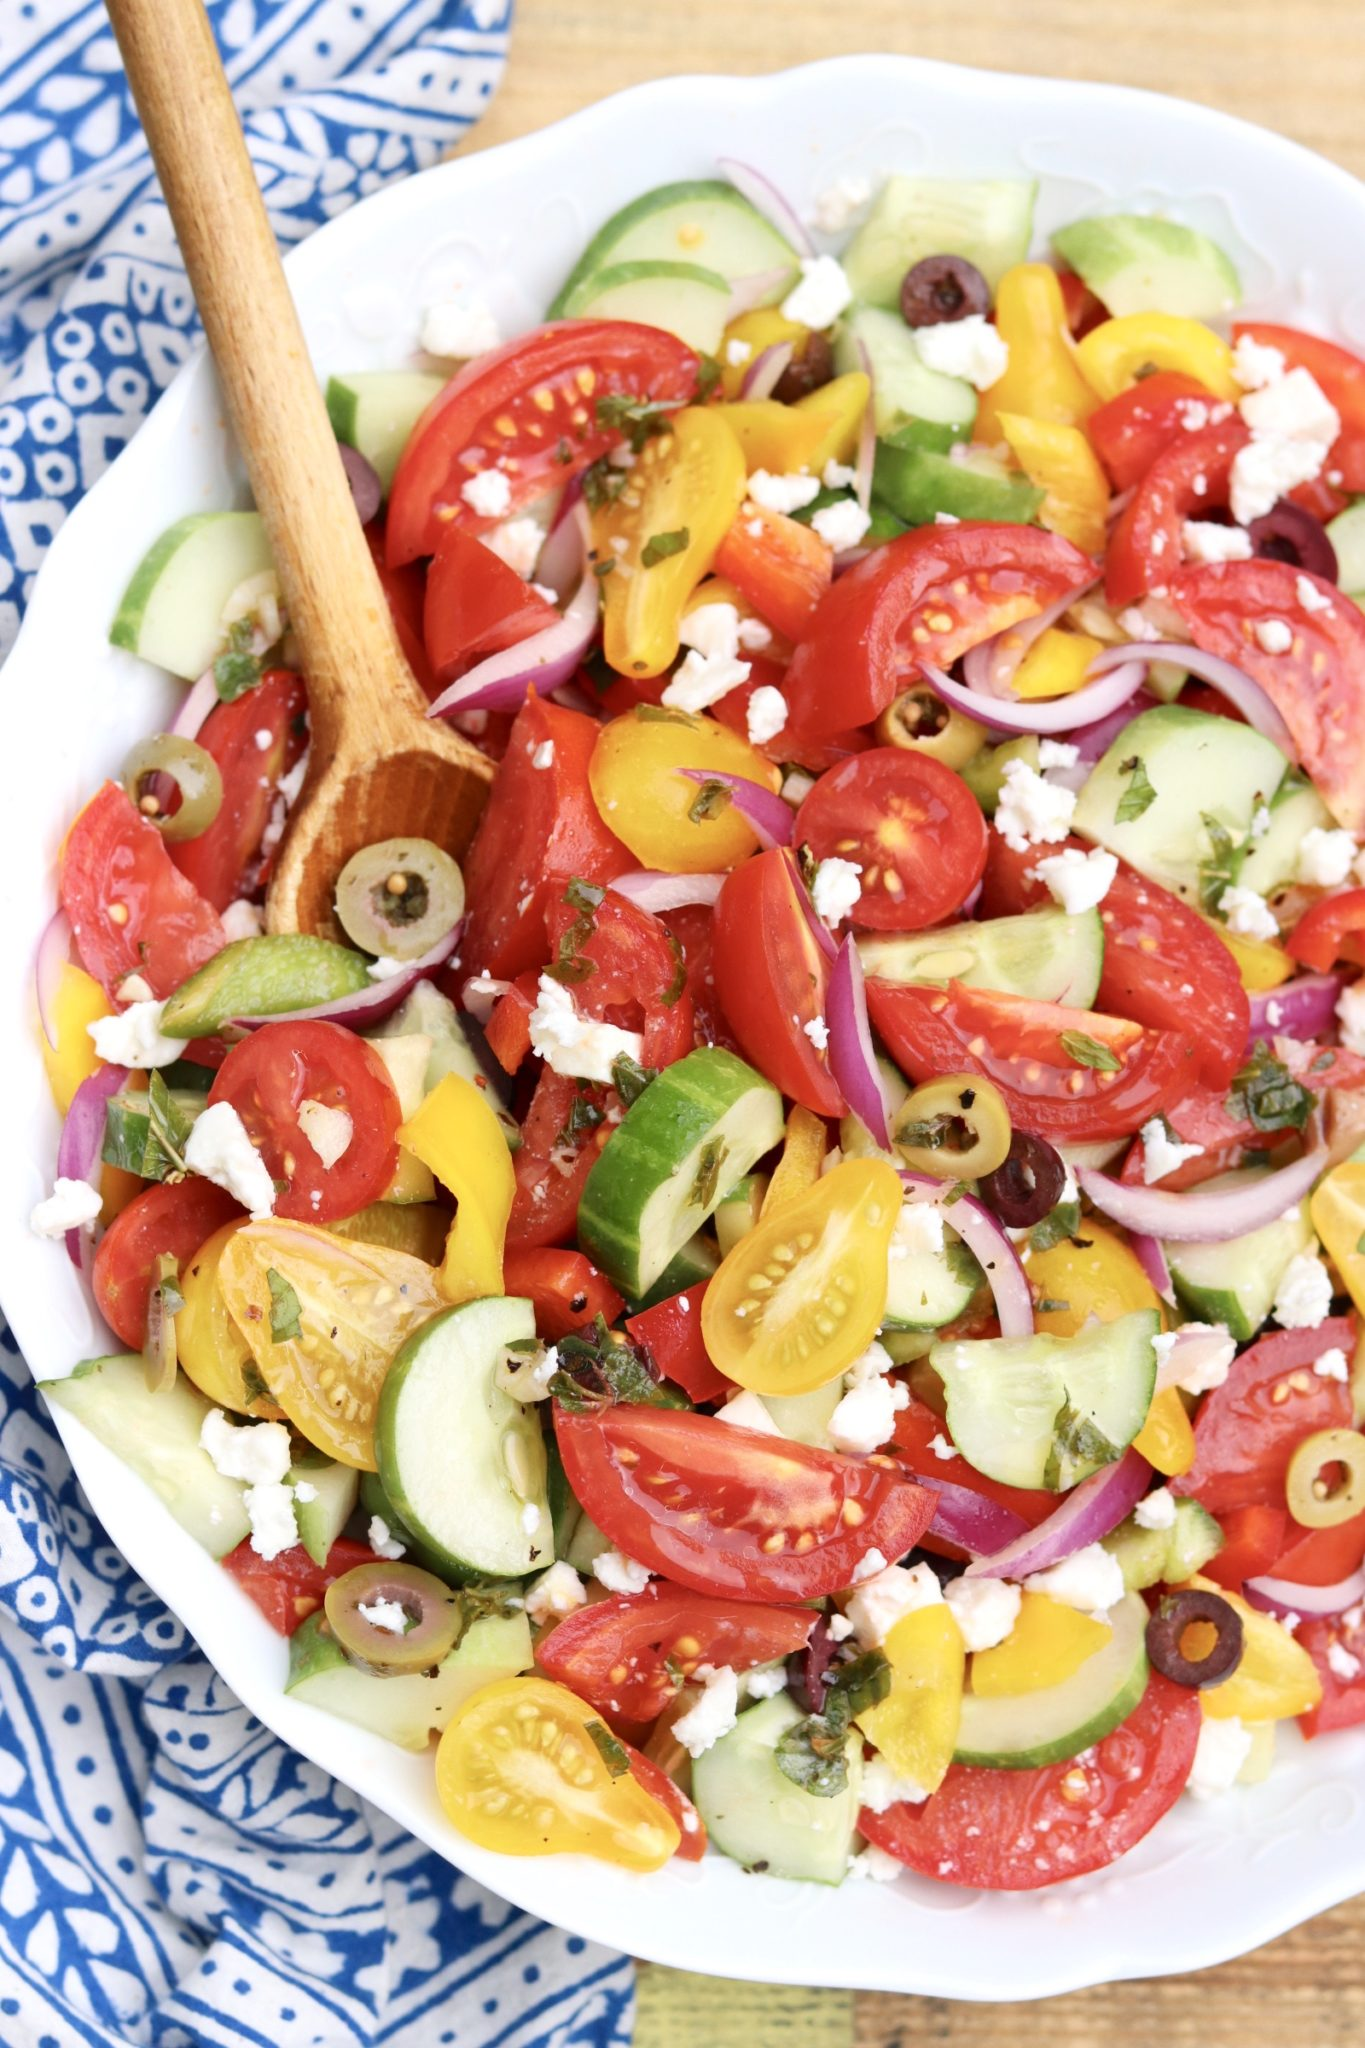 Greek Village Salad- Arustic combination of garden vegetables, feta cheese and kalamata olives (but no lettuce!) tossed with a vinaigrette that will transport you to Greece.